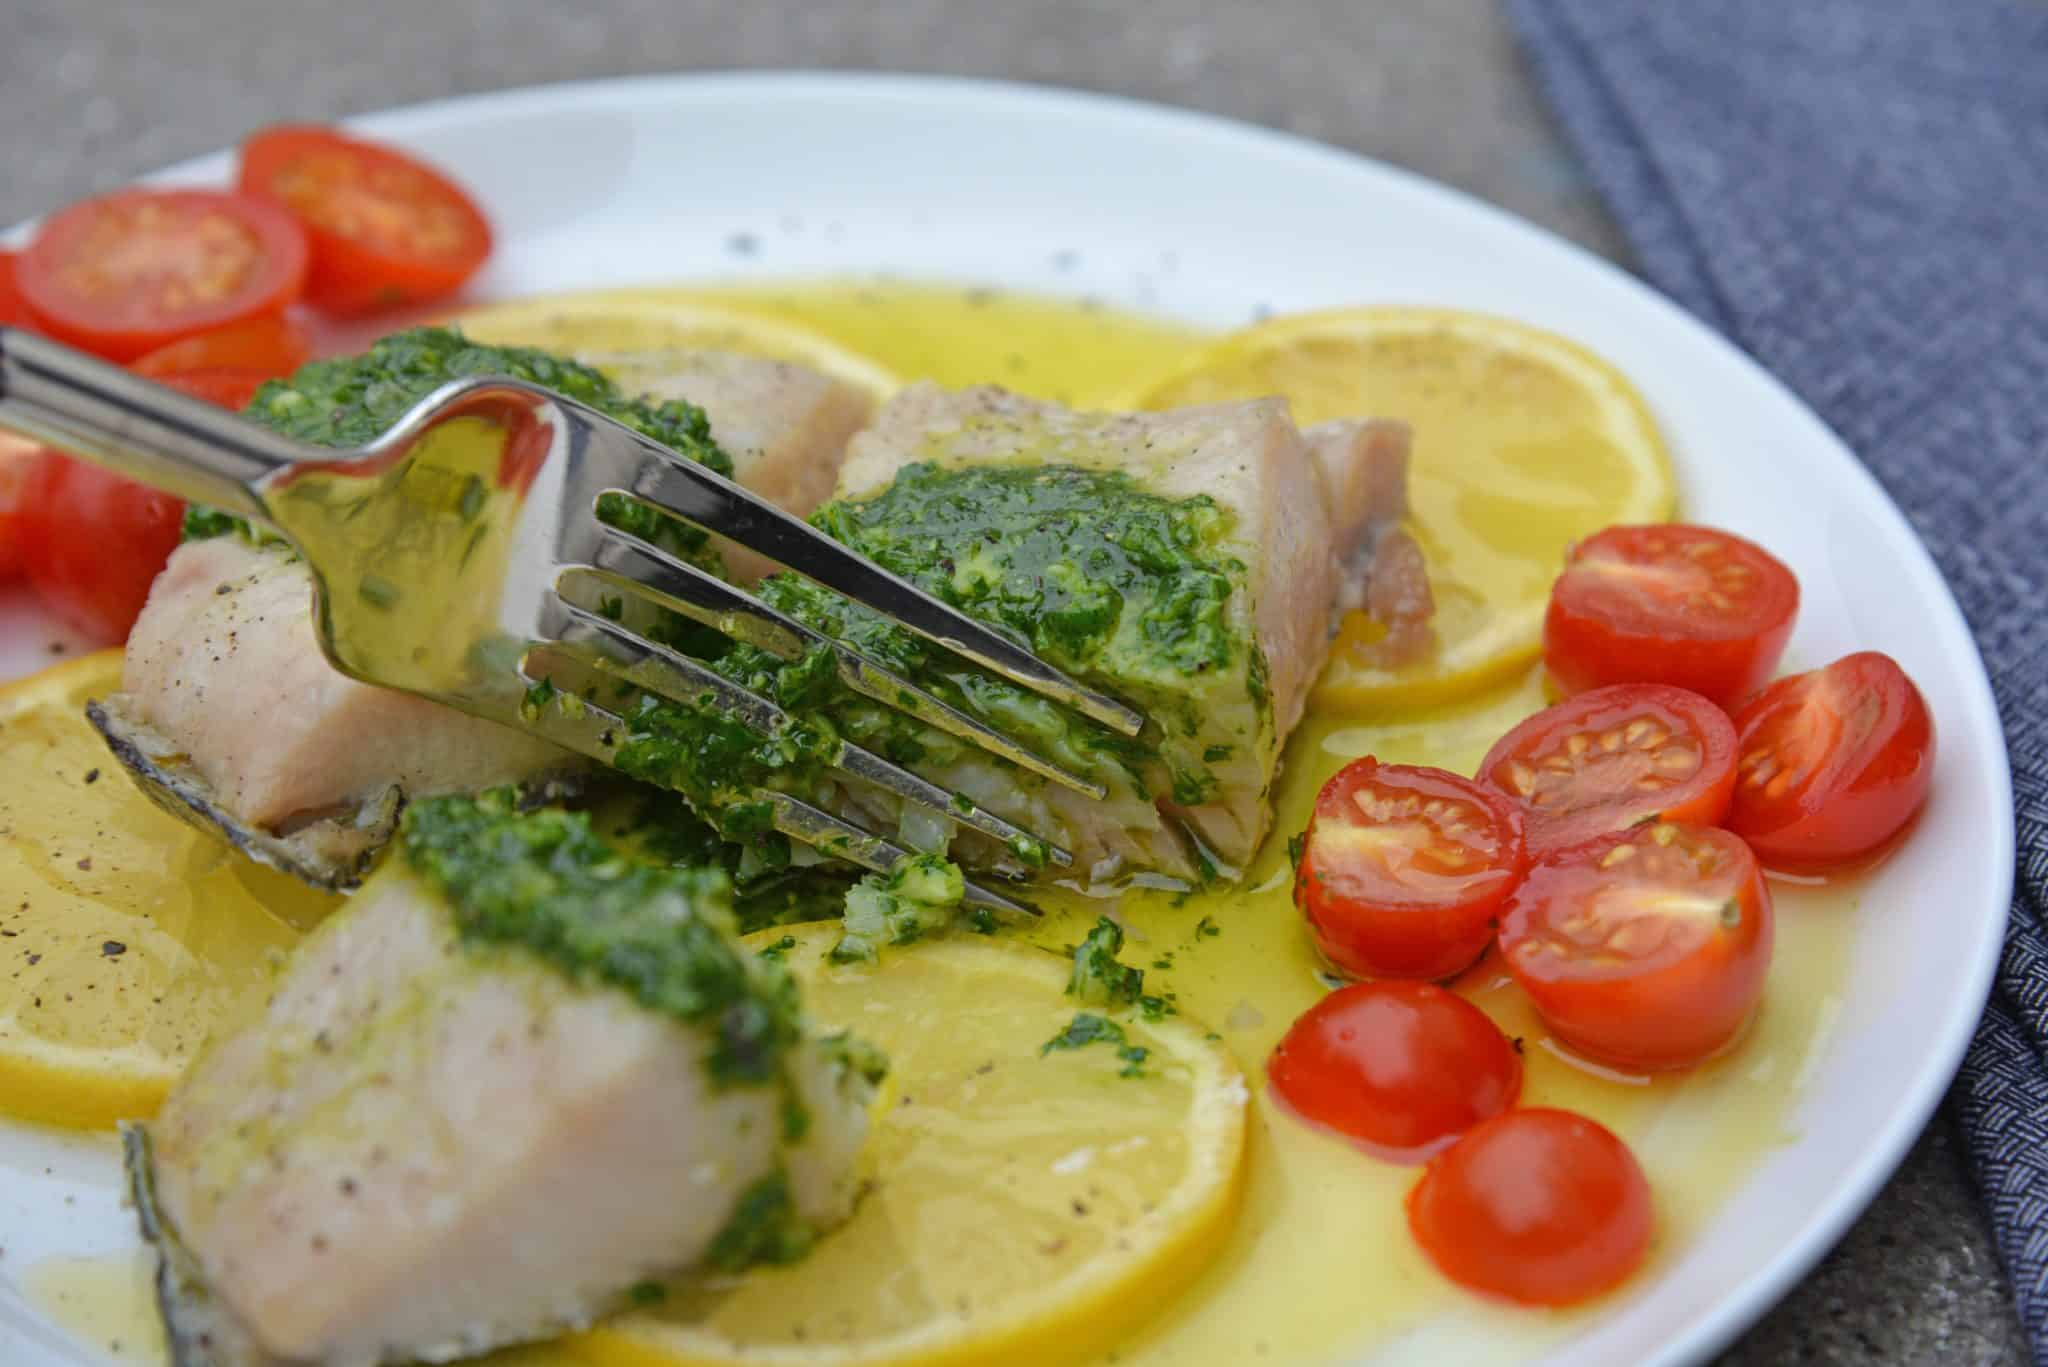 Chimichurri Lemon Mahi Mahi is a deliciously light & flaky mahi mahi recipe! This baked mahi mahi is a easy & simple seafood dish to prepare in 20 minutes! #mahimahirecipes #whatismahimahi #bakedmahimahi www.savoryexperiments.com